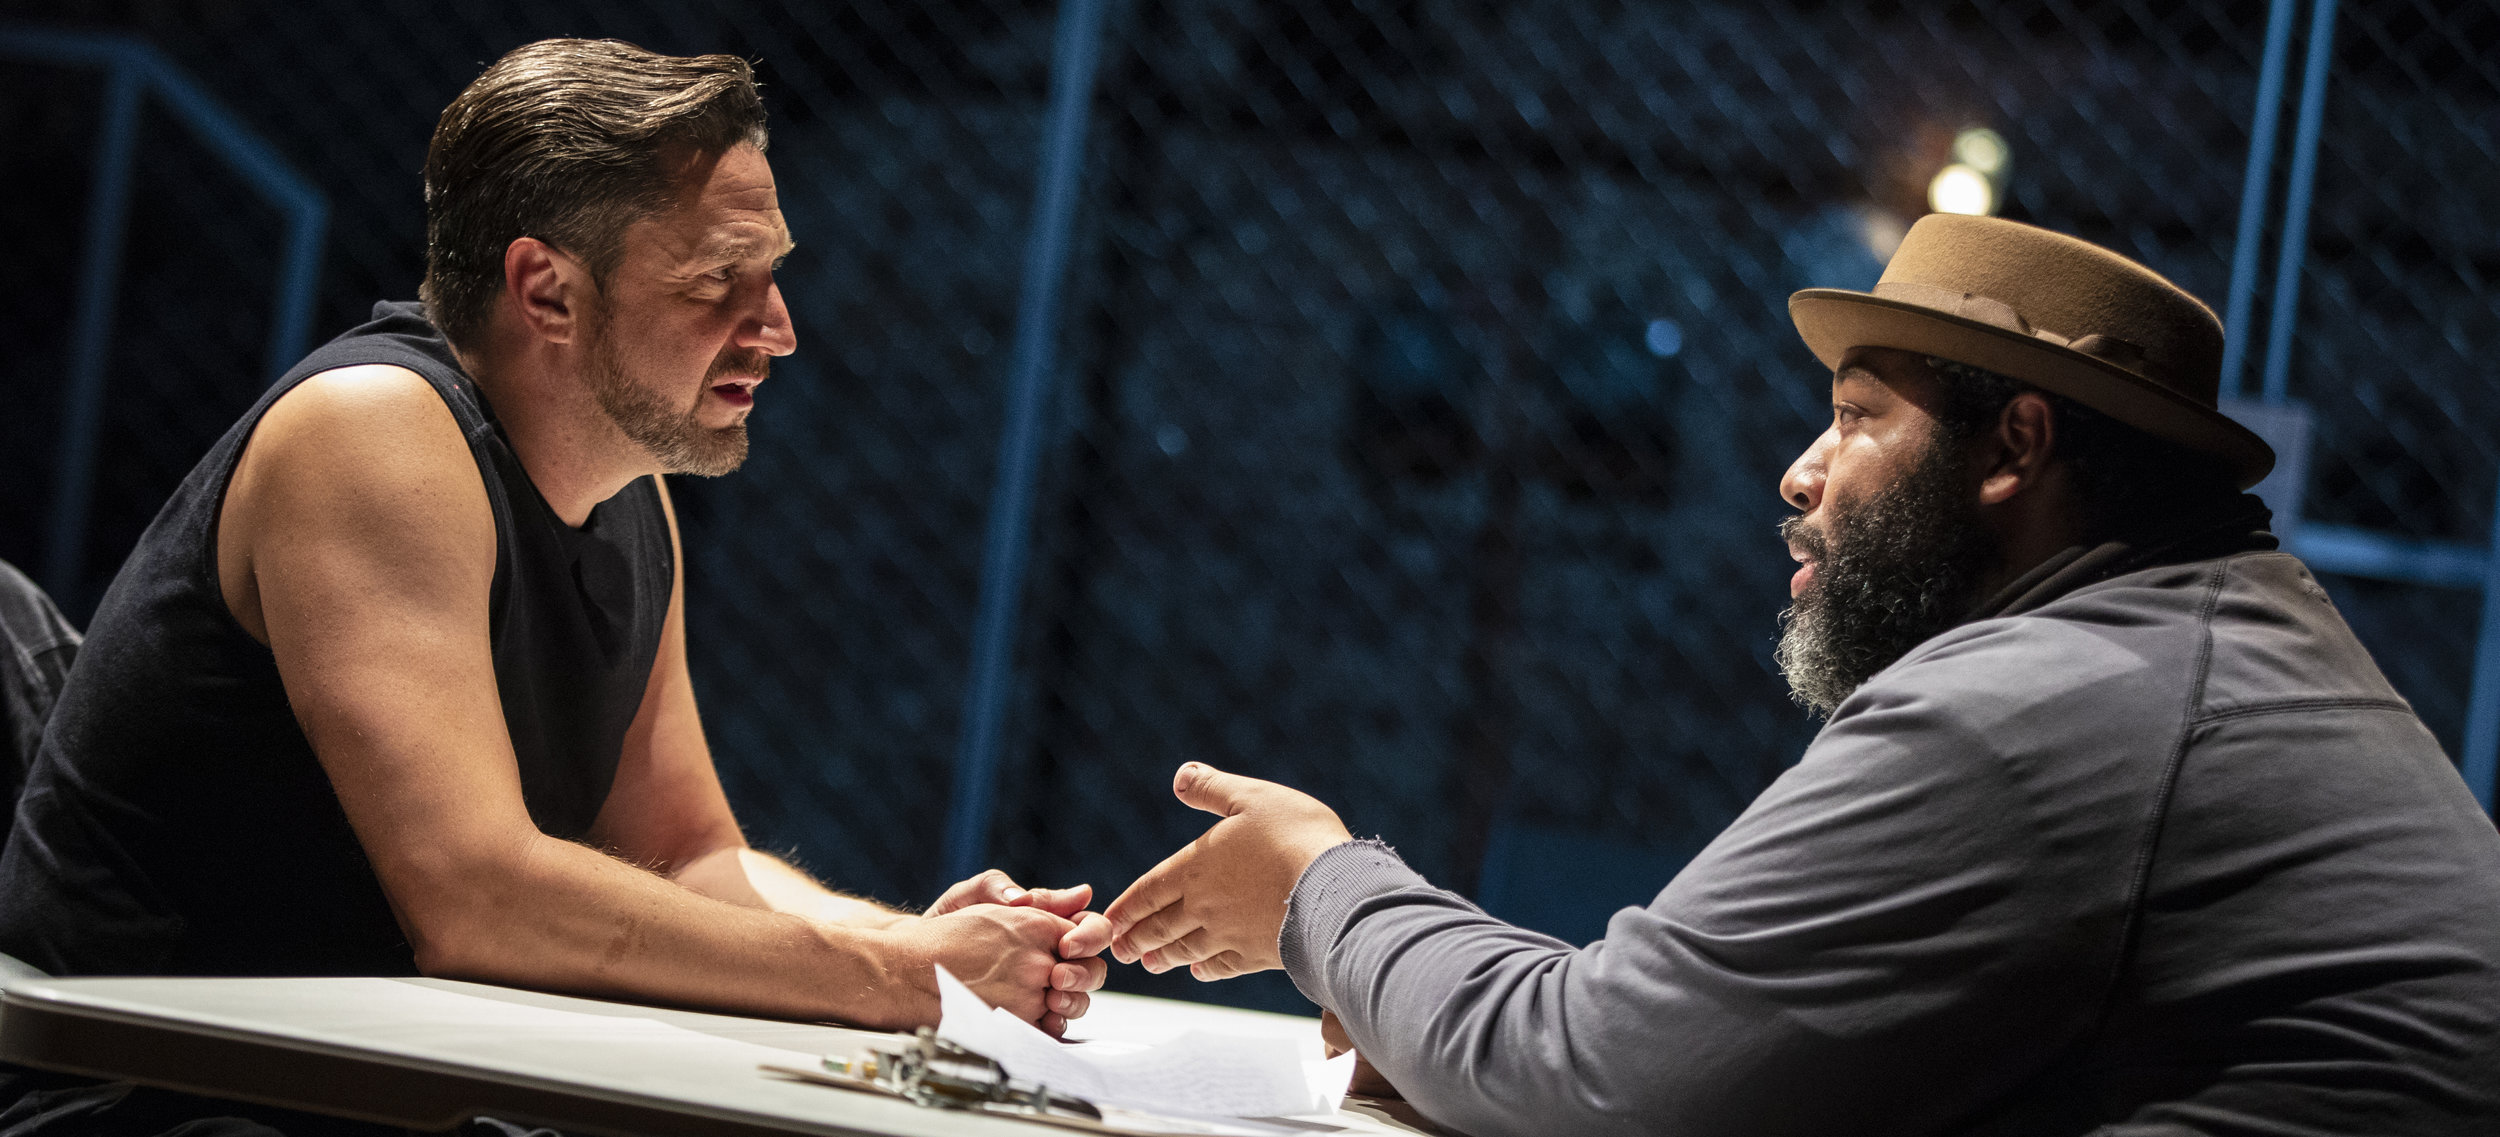 Raúl Esparza (left) plays the title role and Eddie Cooper is Ernie Roma in Bertolt Brecht's  The Resistible Rise of Arturo Ui.  Top: A scene from the play, with George Abud (center).